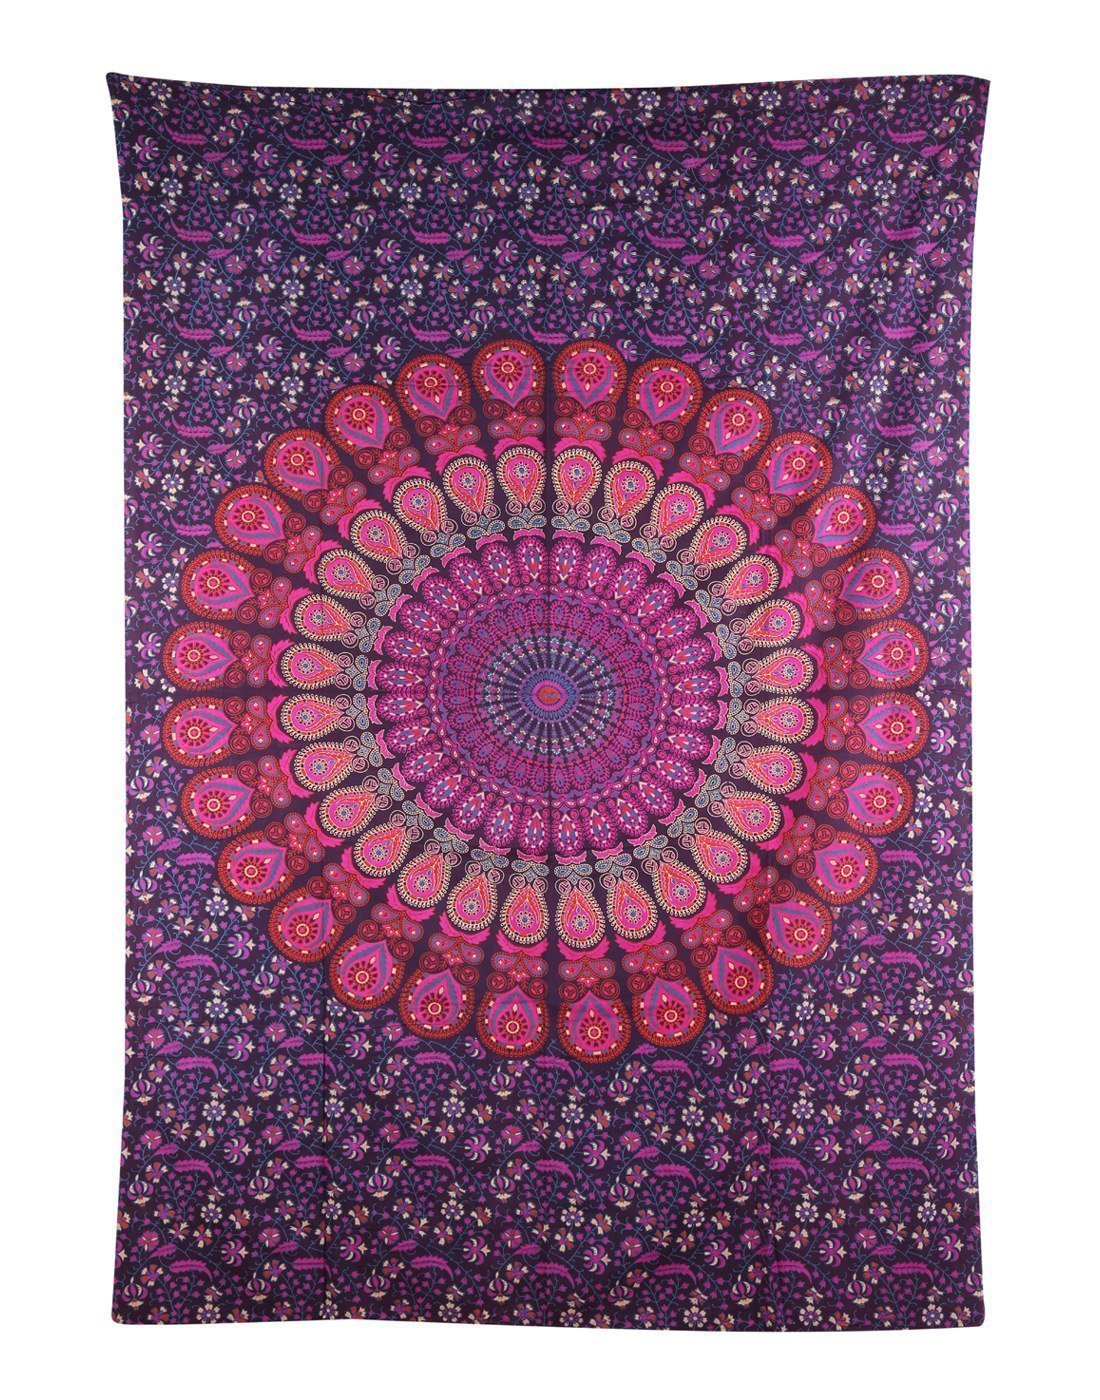 (Twin(54x72Inches)(140x185cms), Blue Green) Bless International Indian hippie Bohemian Psychedelic Peacock Mandala Wall hanging Bedding Tapestry (Blue Green, Twin(54x72Inches)(140x185cms)) B01HDCROD8 Twin(54x72Inches)(140x185cms),ブルーグリーン